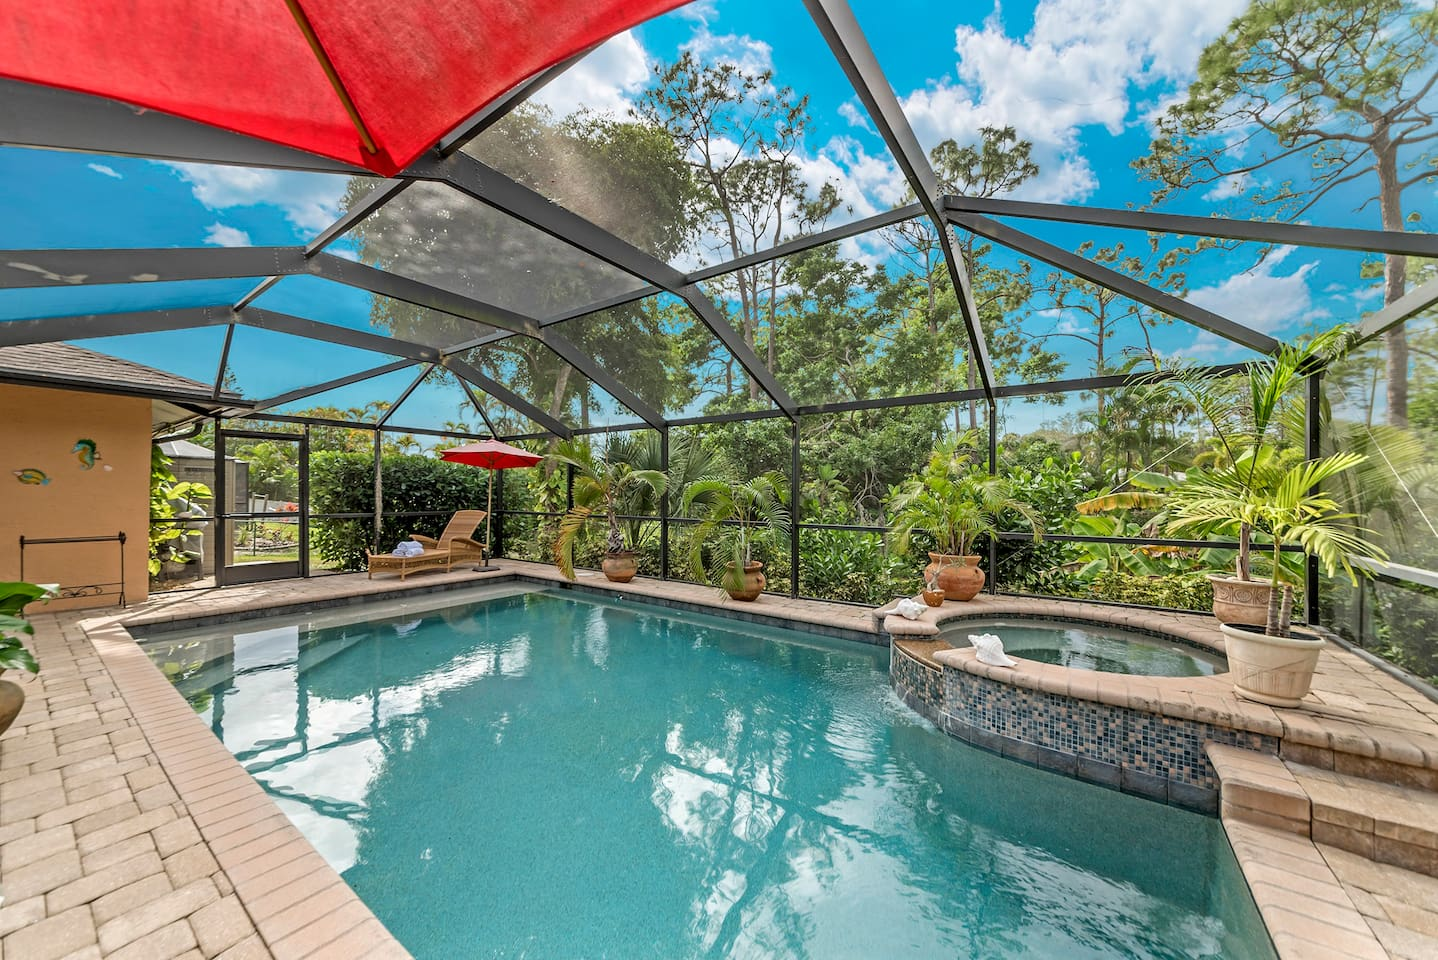 AirBnB  1 Bedroom with Pool bath  Florida Livestyle , close to the beach